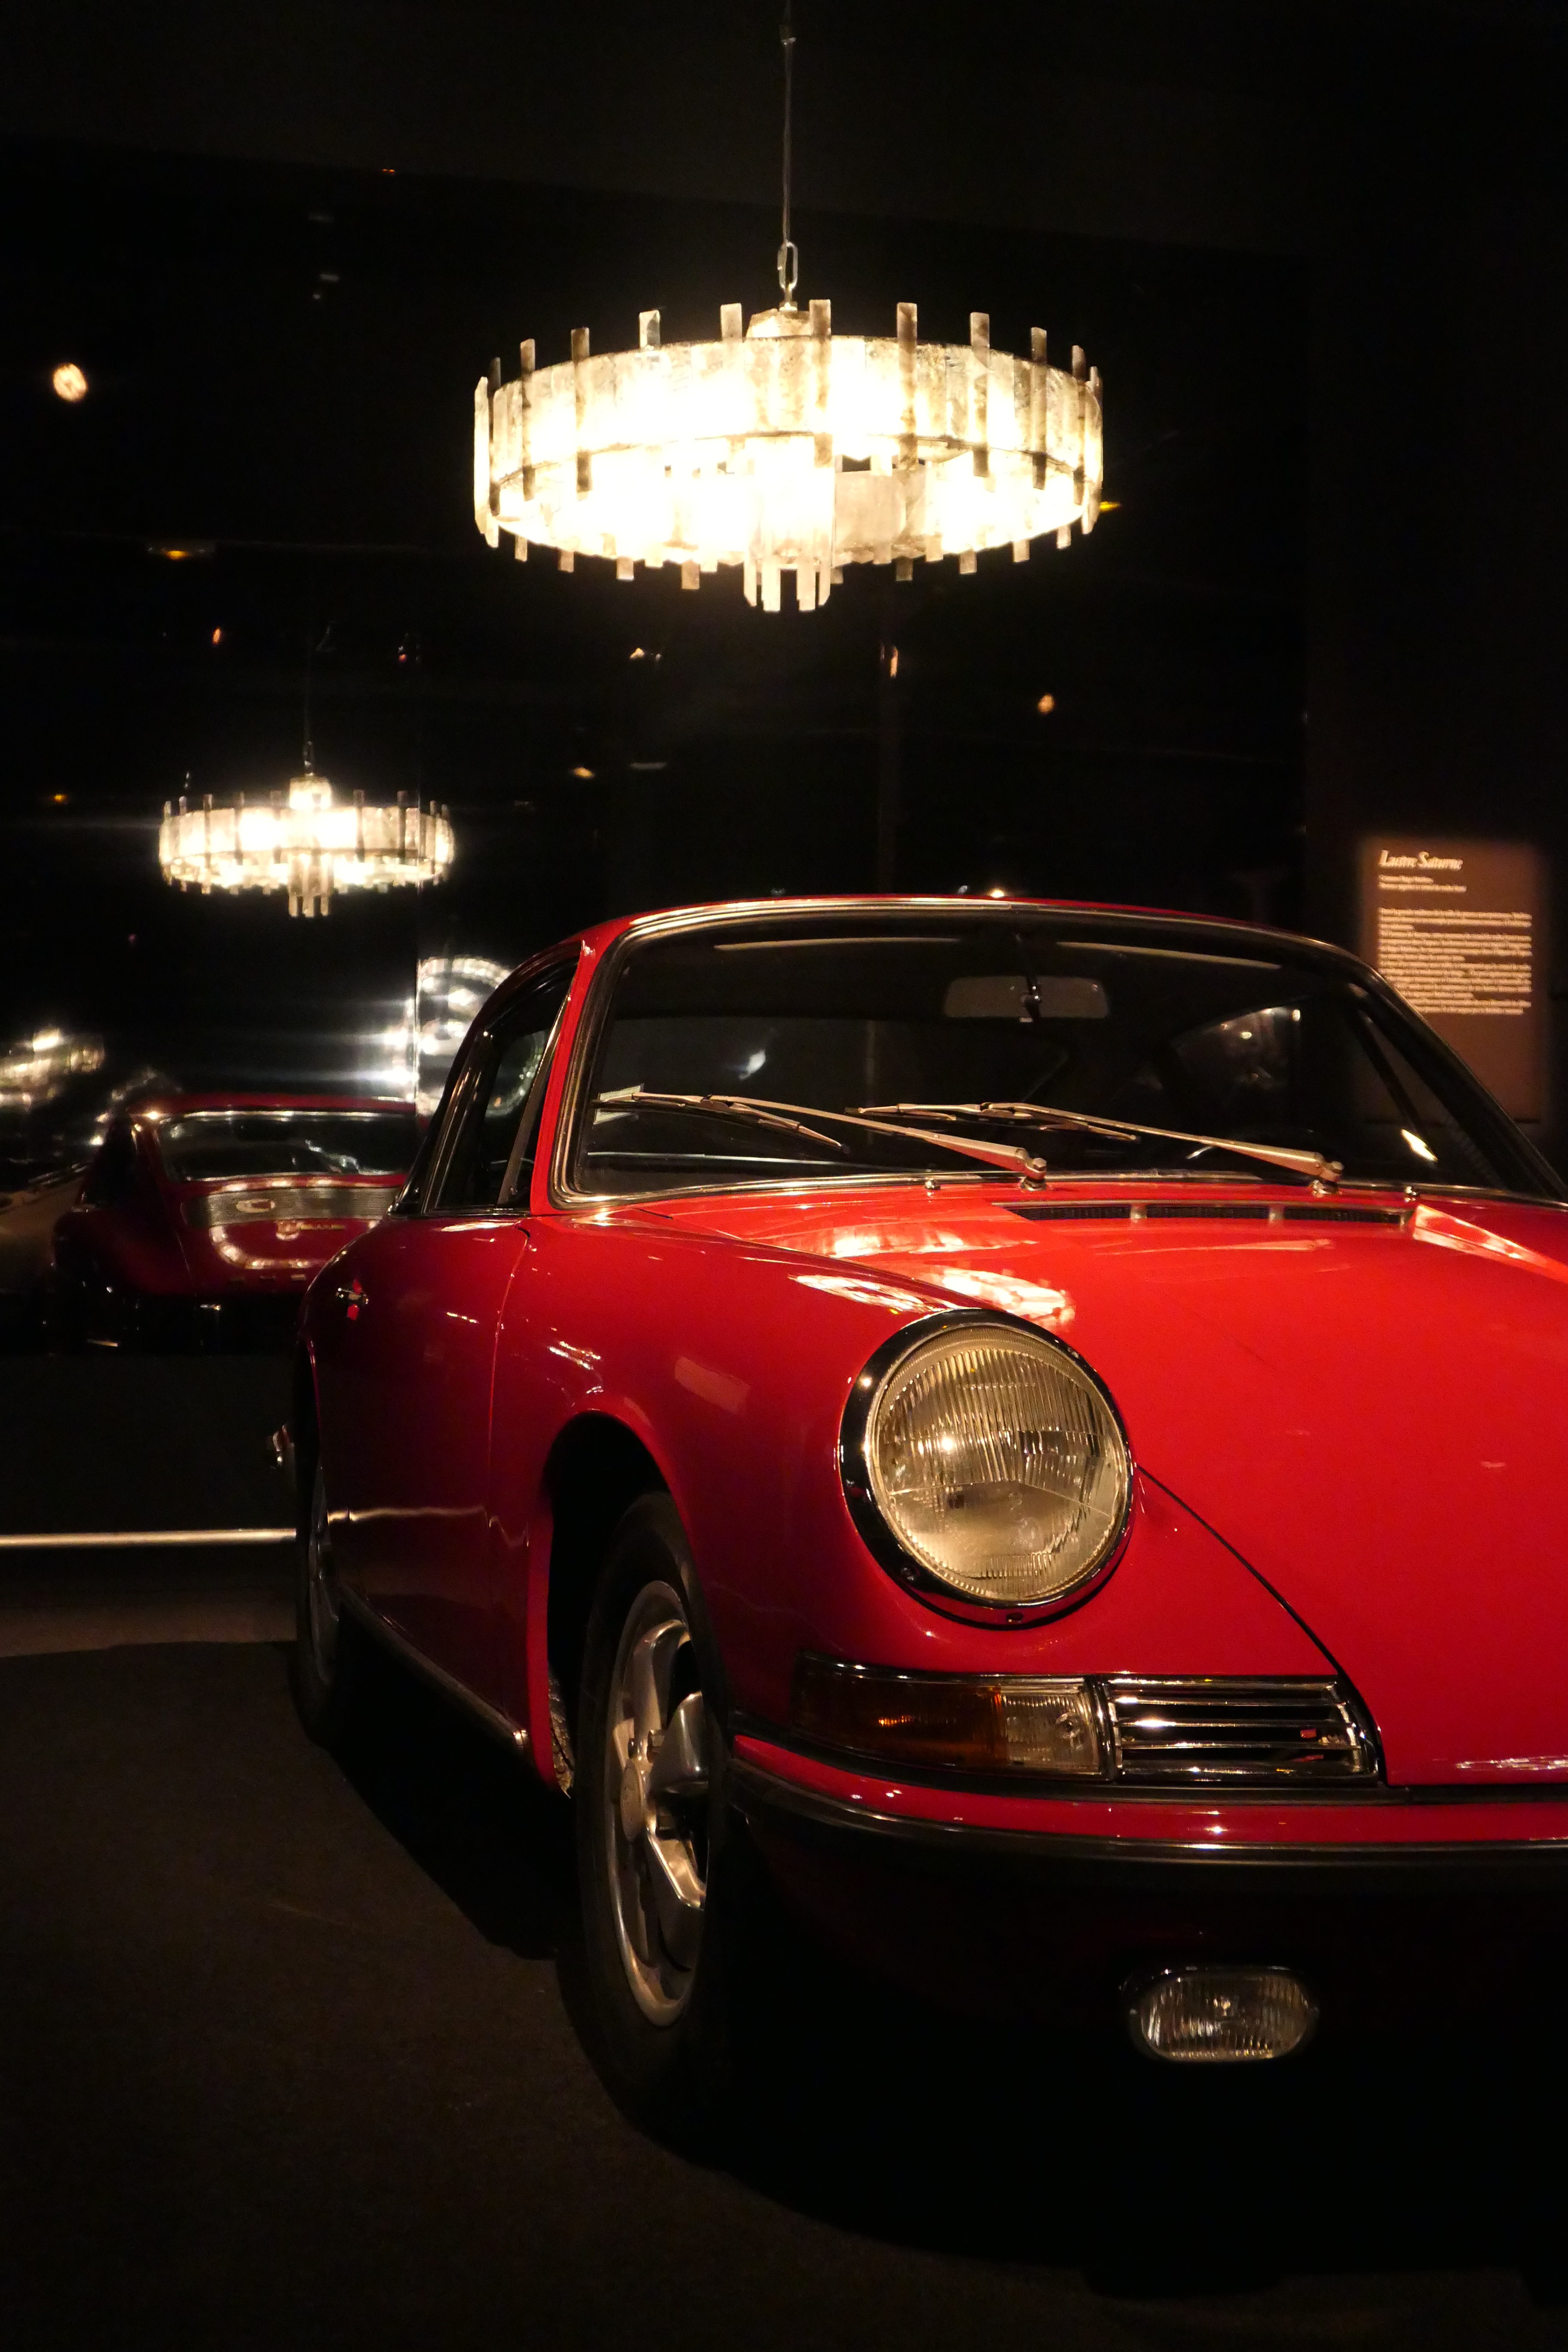 Porsche 911 S exposition exhibition regis mathieu cite de l'automobile mulhouse collection schlumpf road rug cars roadrugcars brothers car voiture auto automobile vintage car super car hyper car